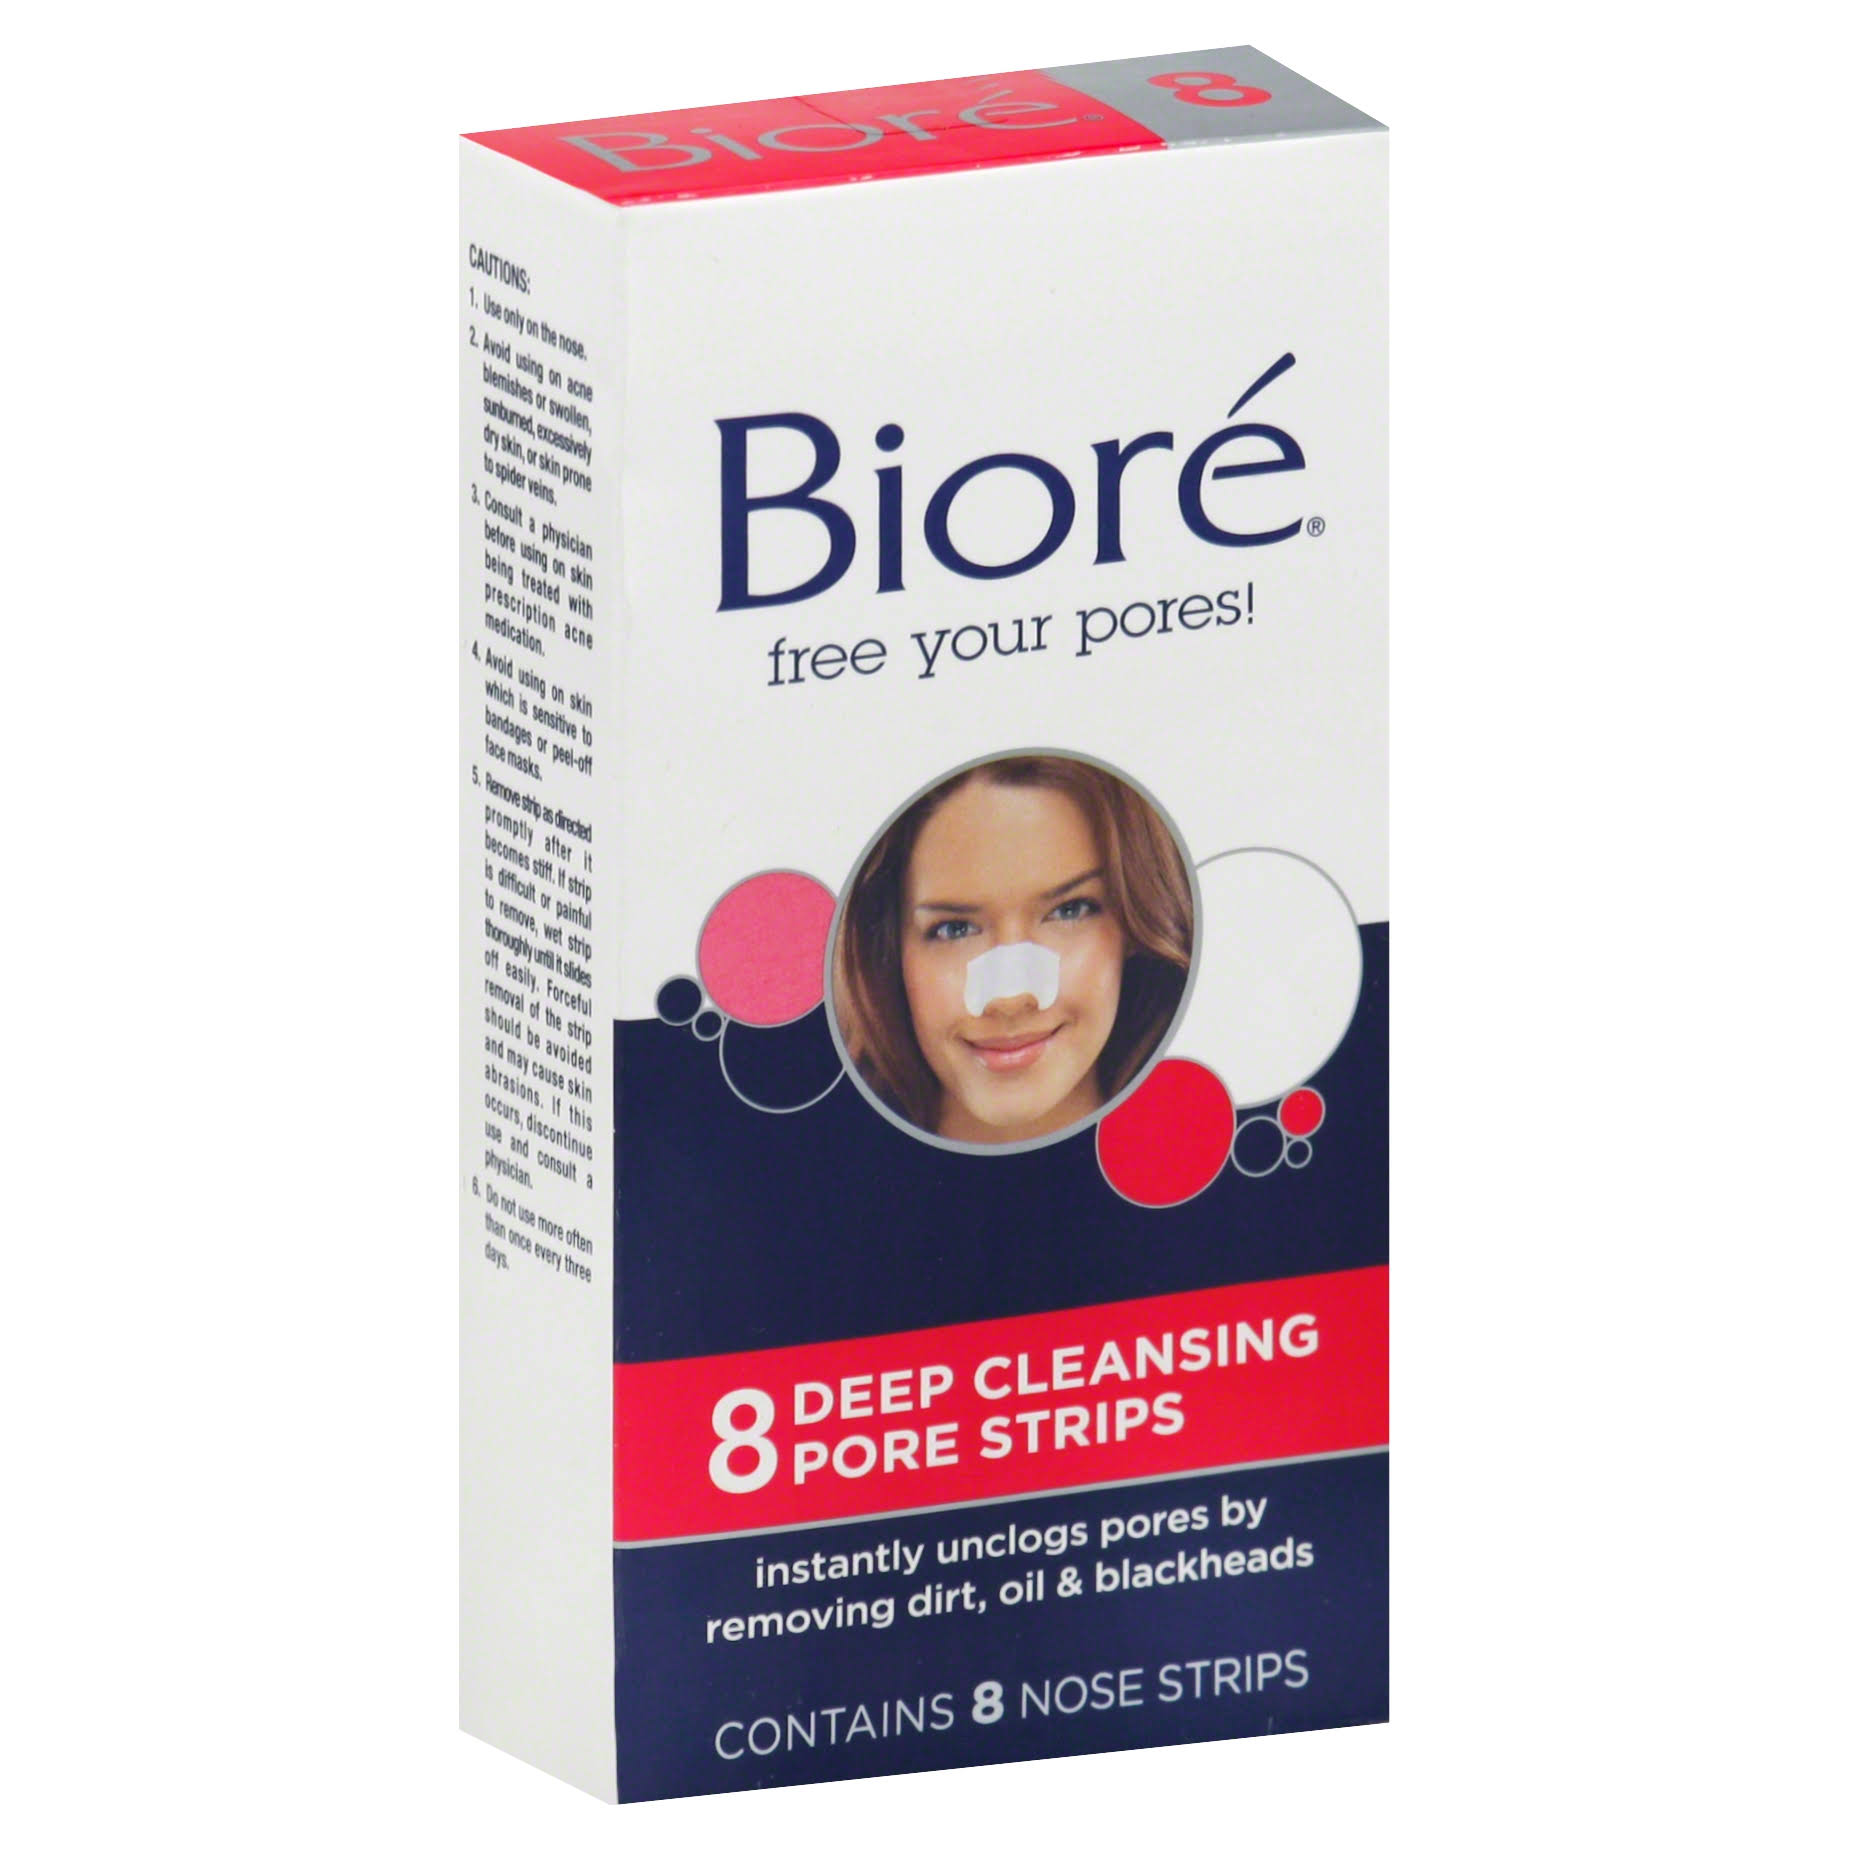 Biore Pore Strips - 8 Deep Cleansing Pore Strips